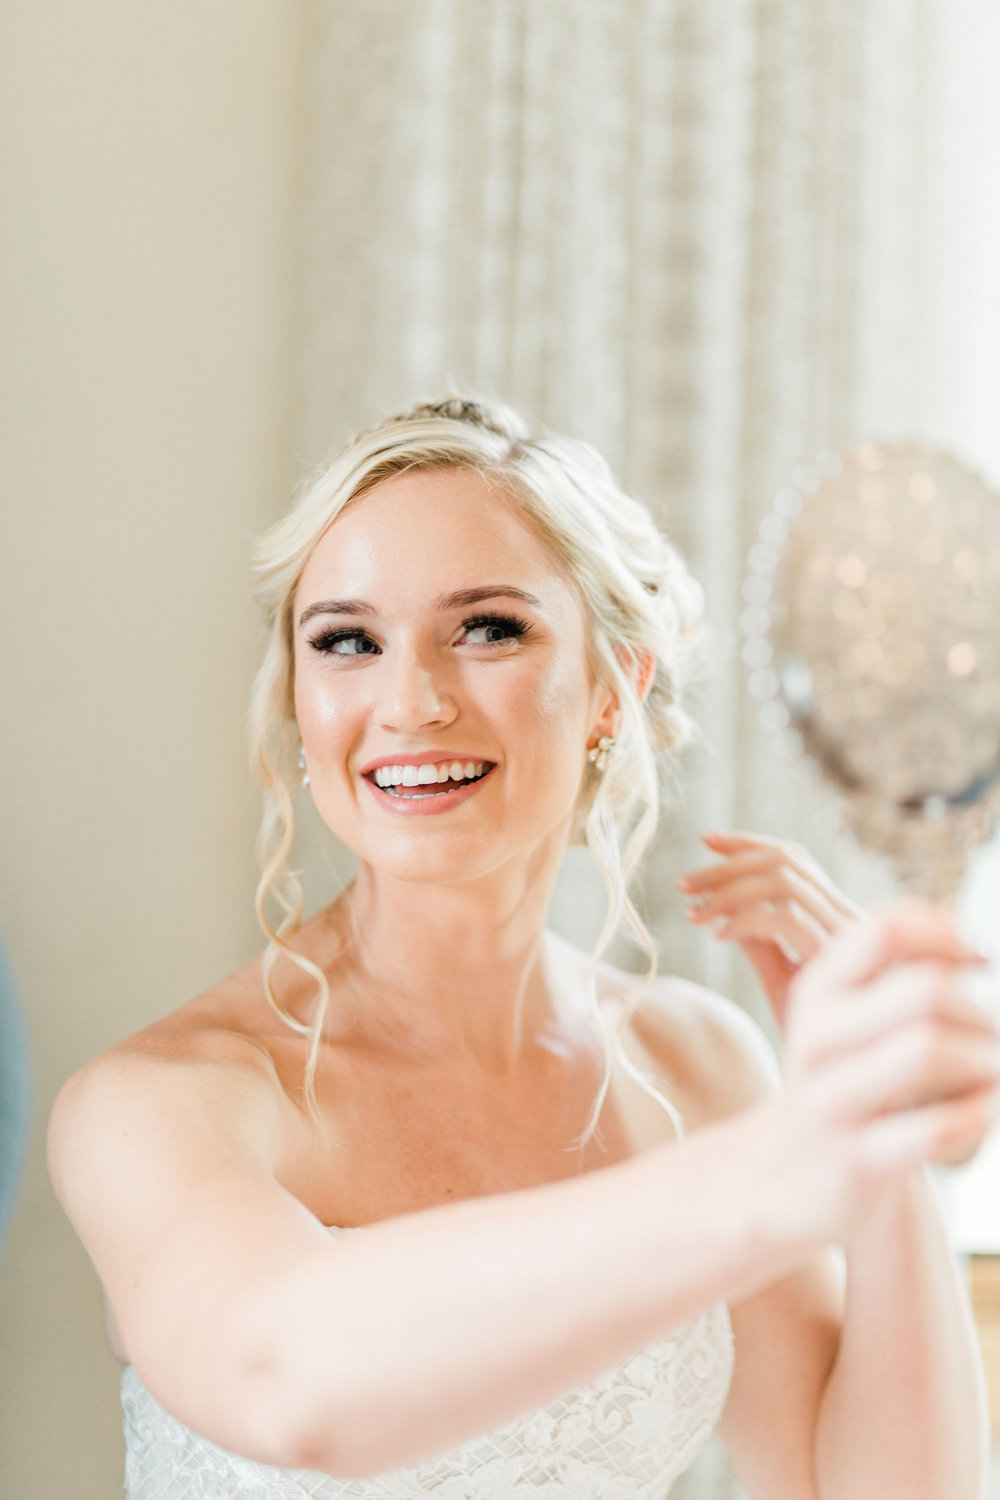 #4 THE BIG DAY!!! - On your wedding day we will travel to you to prepare you for your special day to make you look gorgeous with long lasting makeup. All you have to do is relax, enjoy the moment and look beautiful.